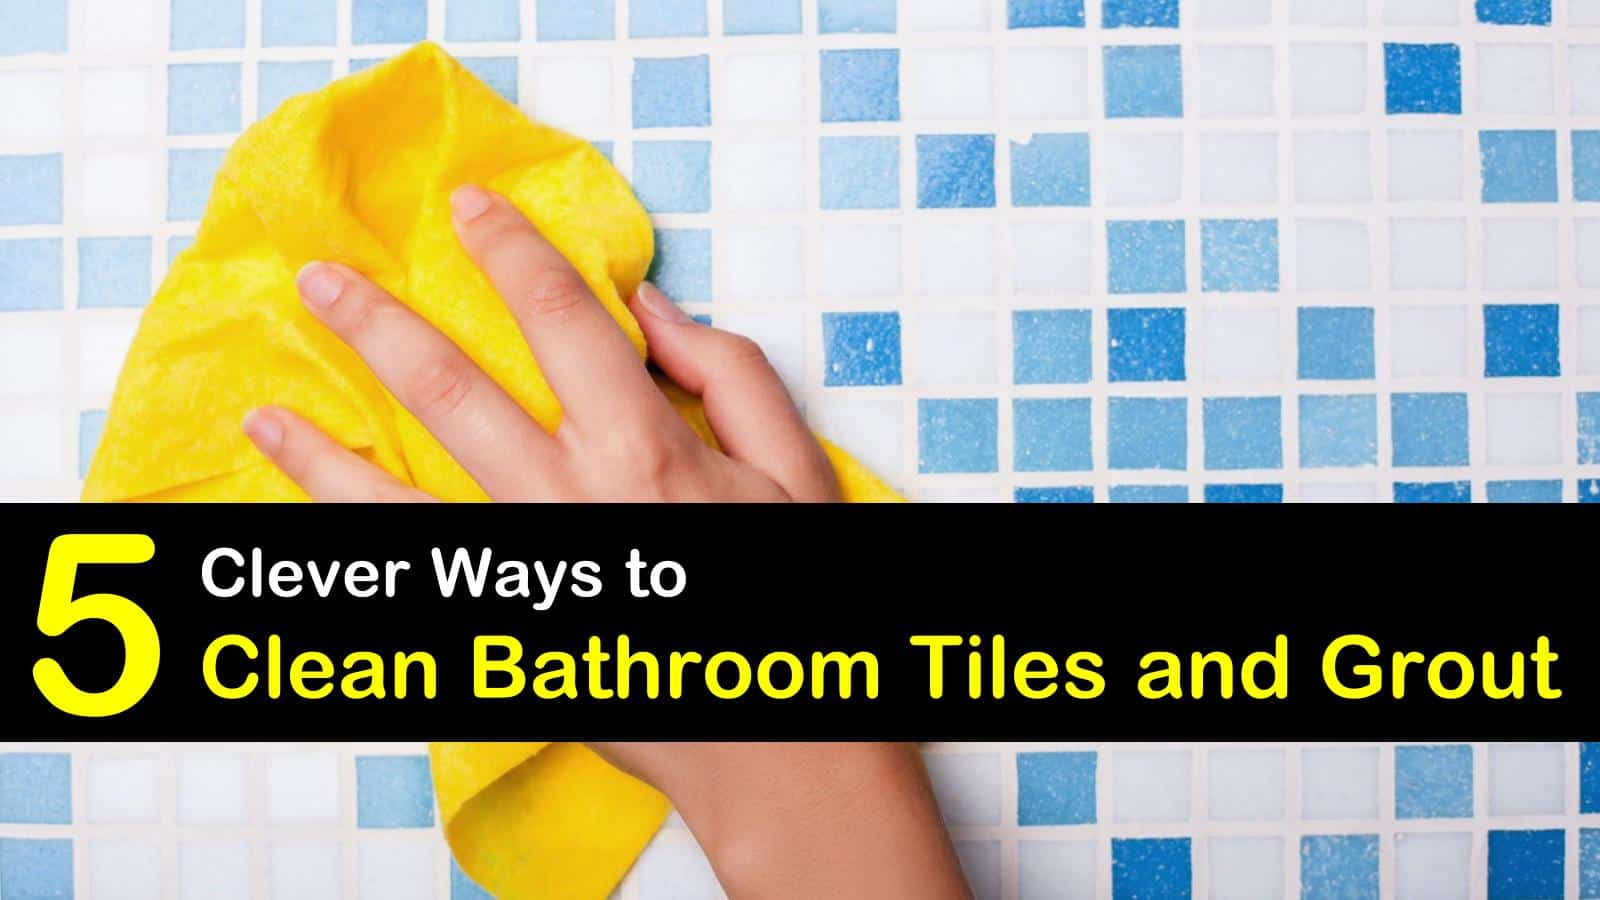 How To Clean Bathroom Tile Grout 5 Clever Ways To Clean Bathroom Tiles And Grout